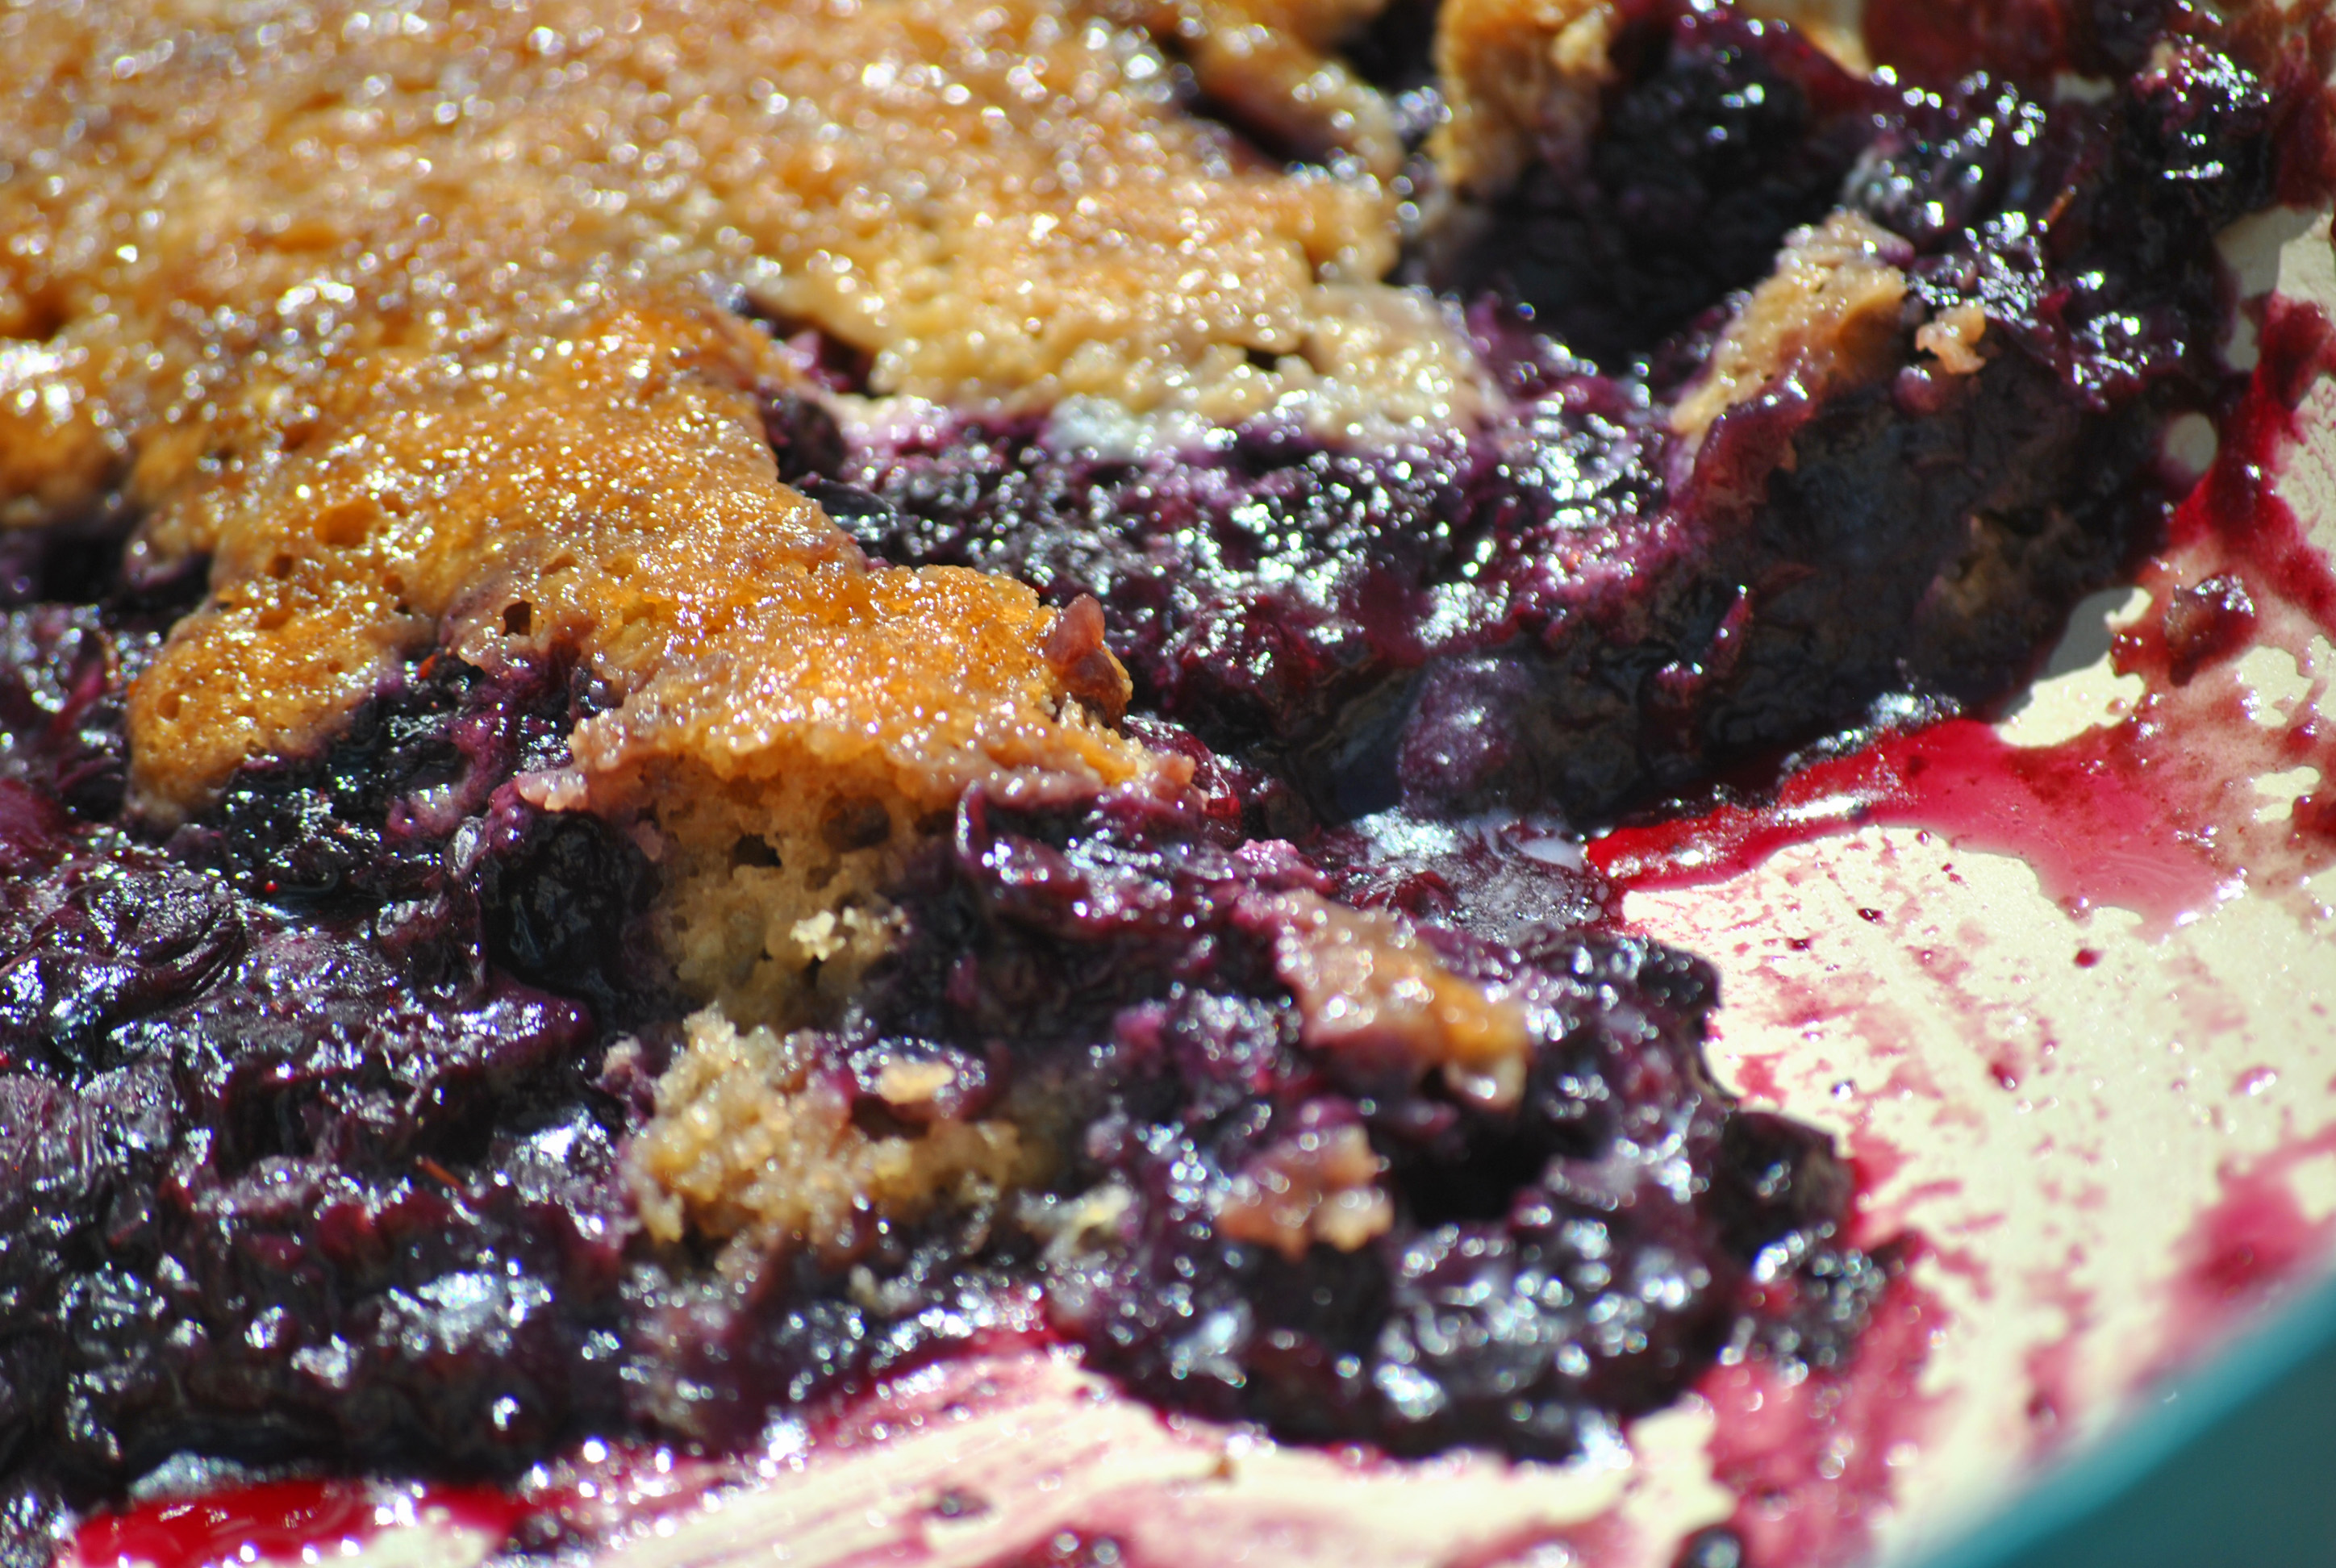 Blueberry Cobbler Images & Pictures - Becuo